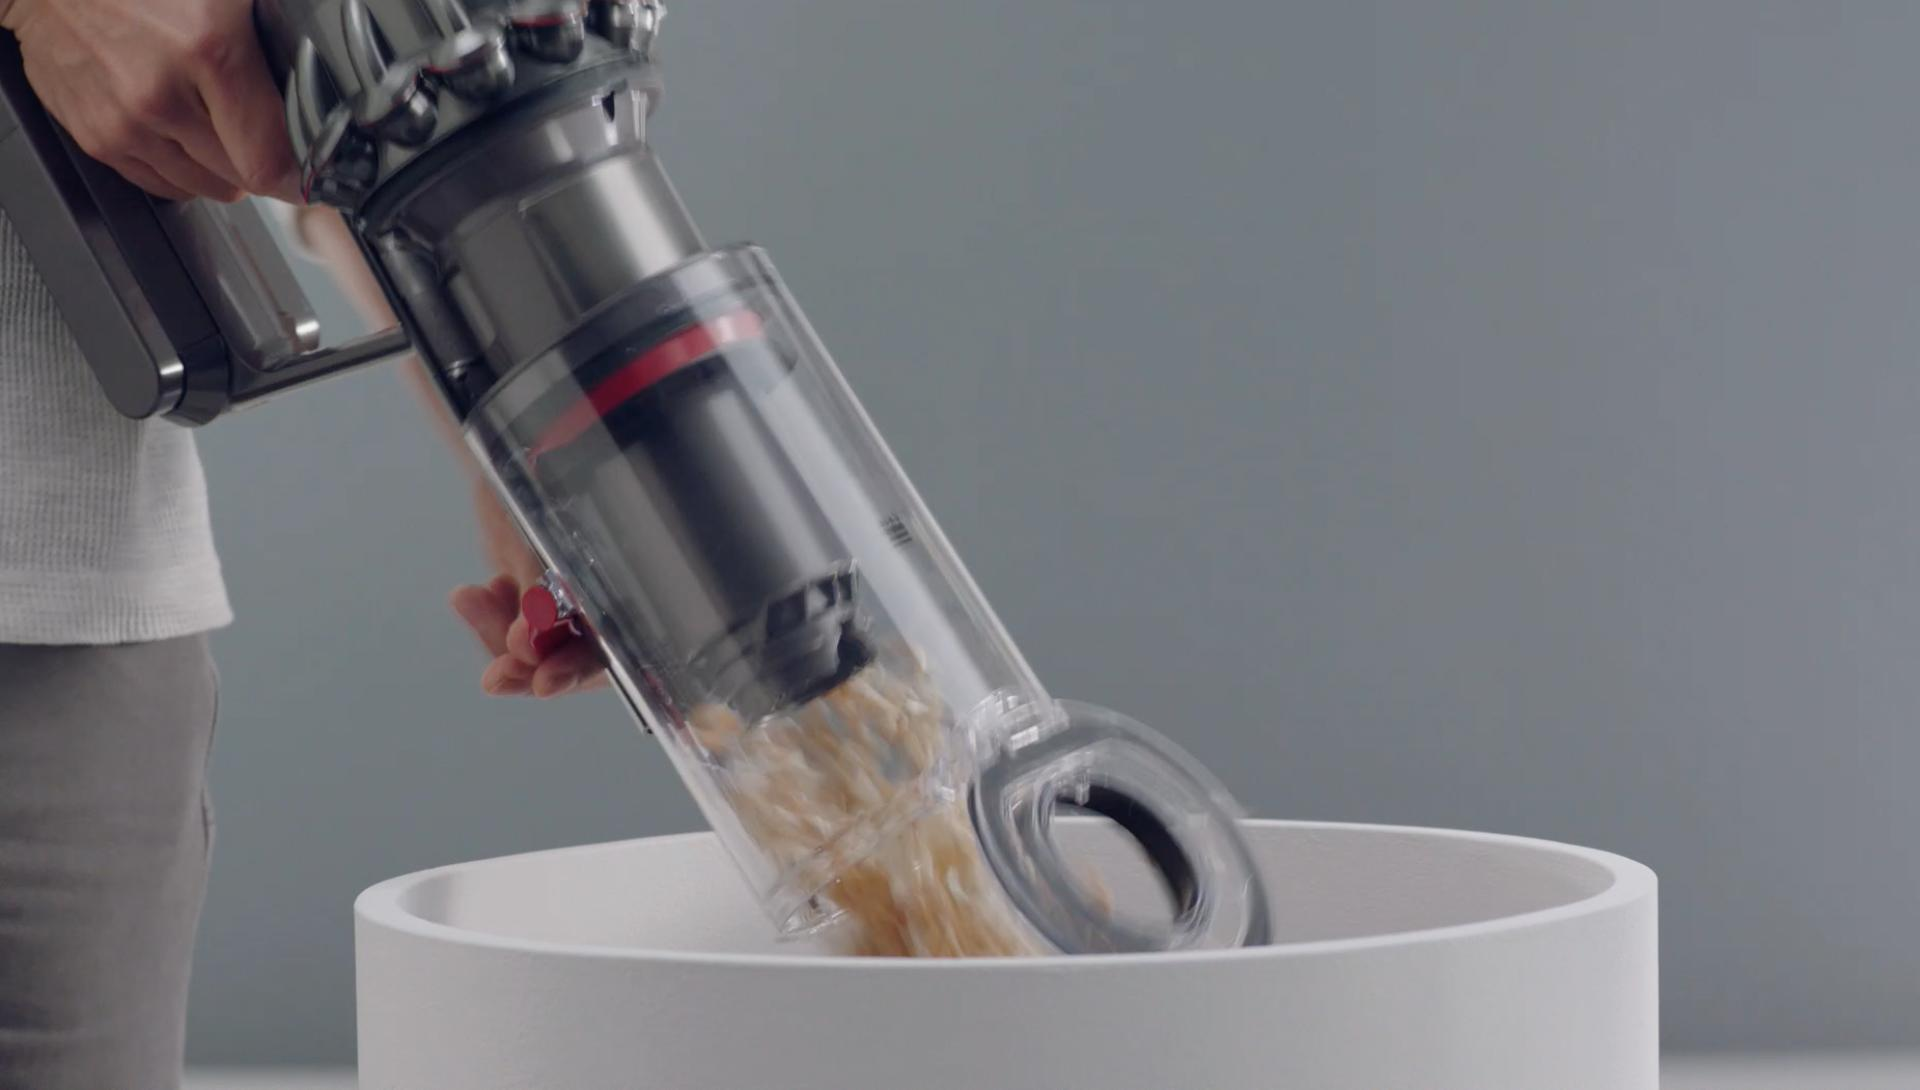 Dyson V11 vacuum cleaner being emptied into a bin